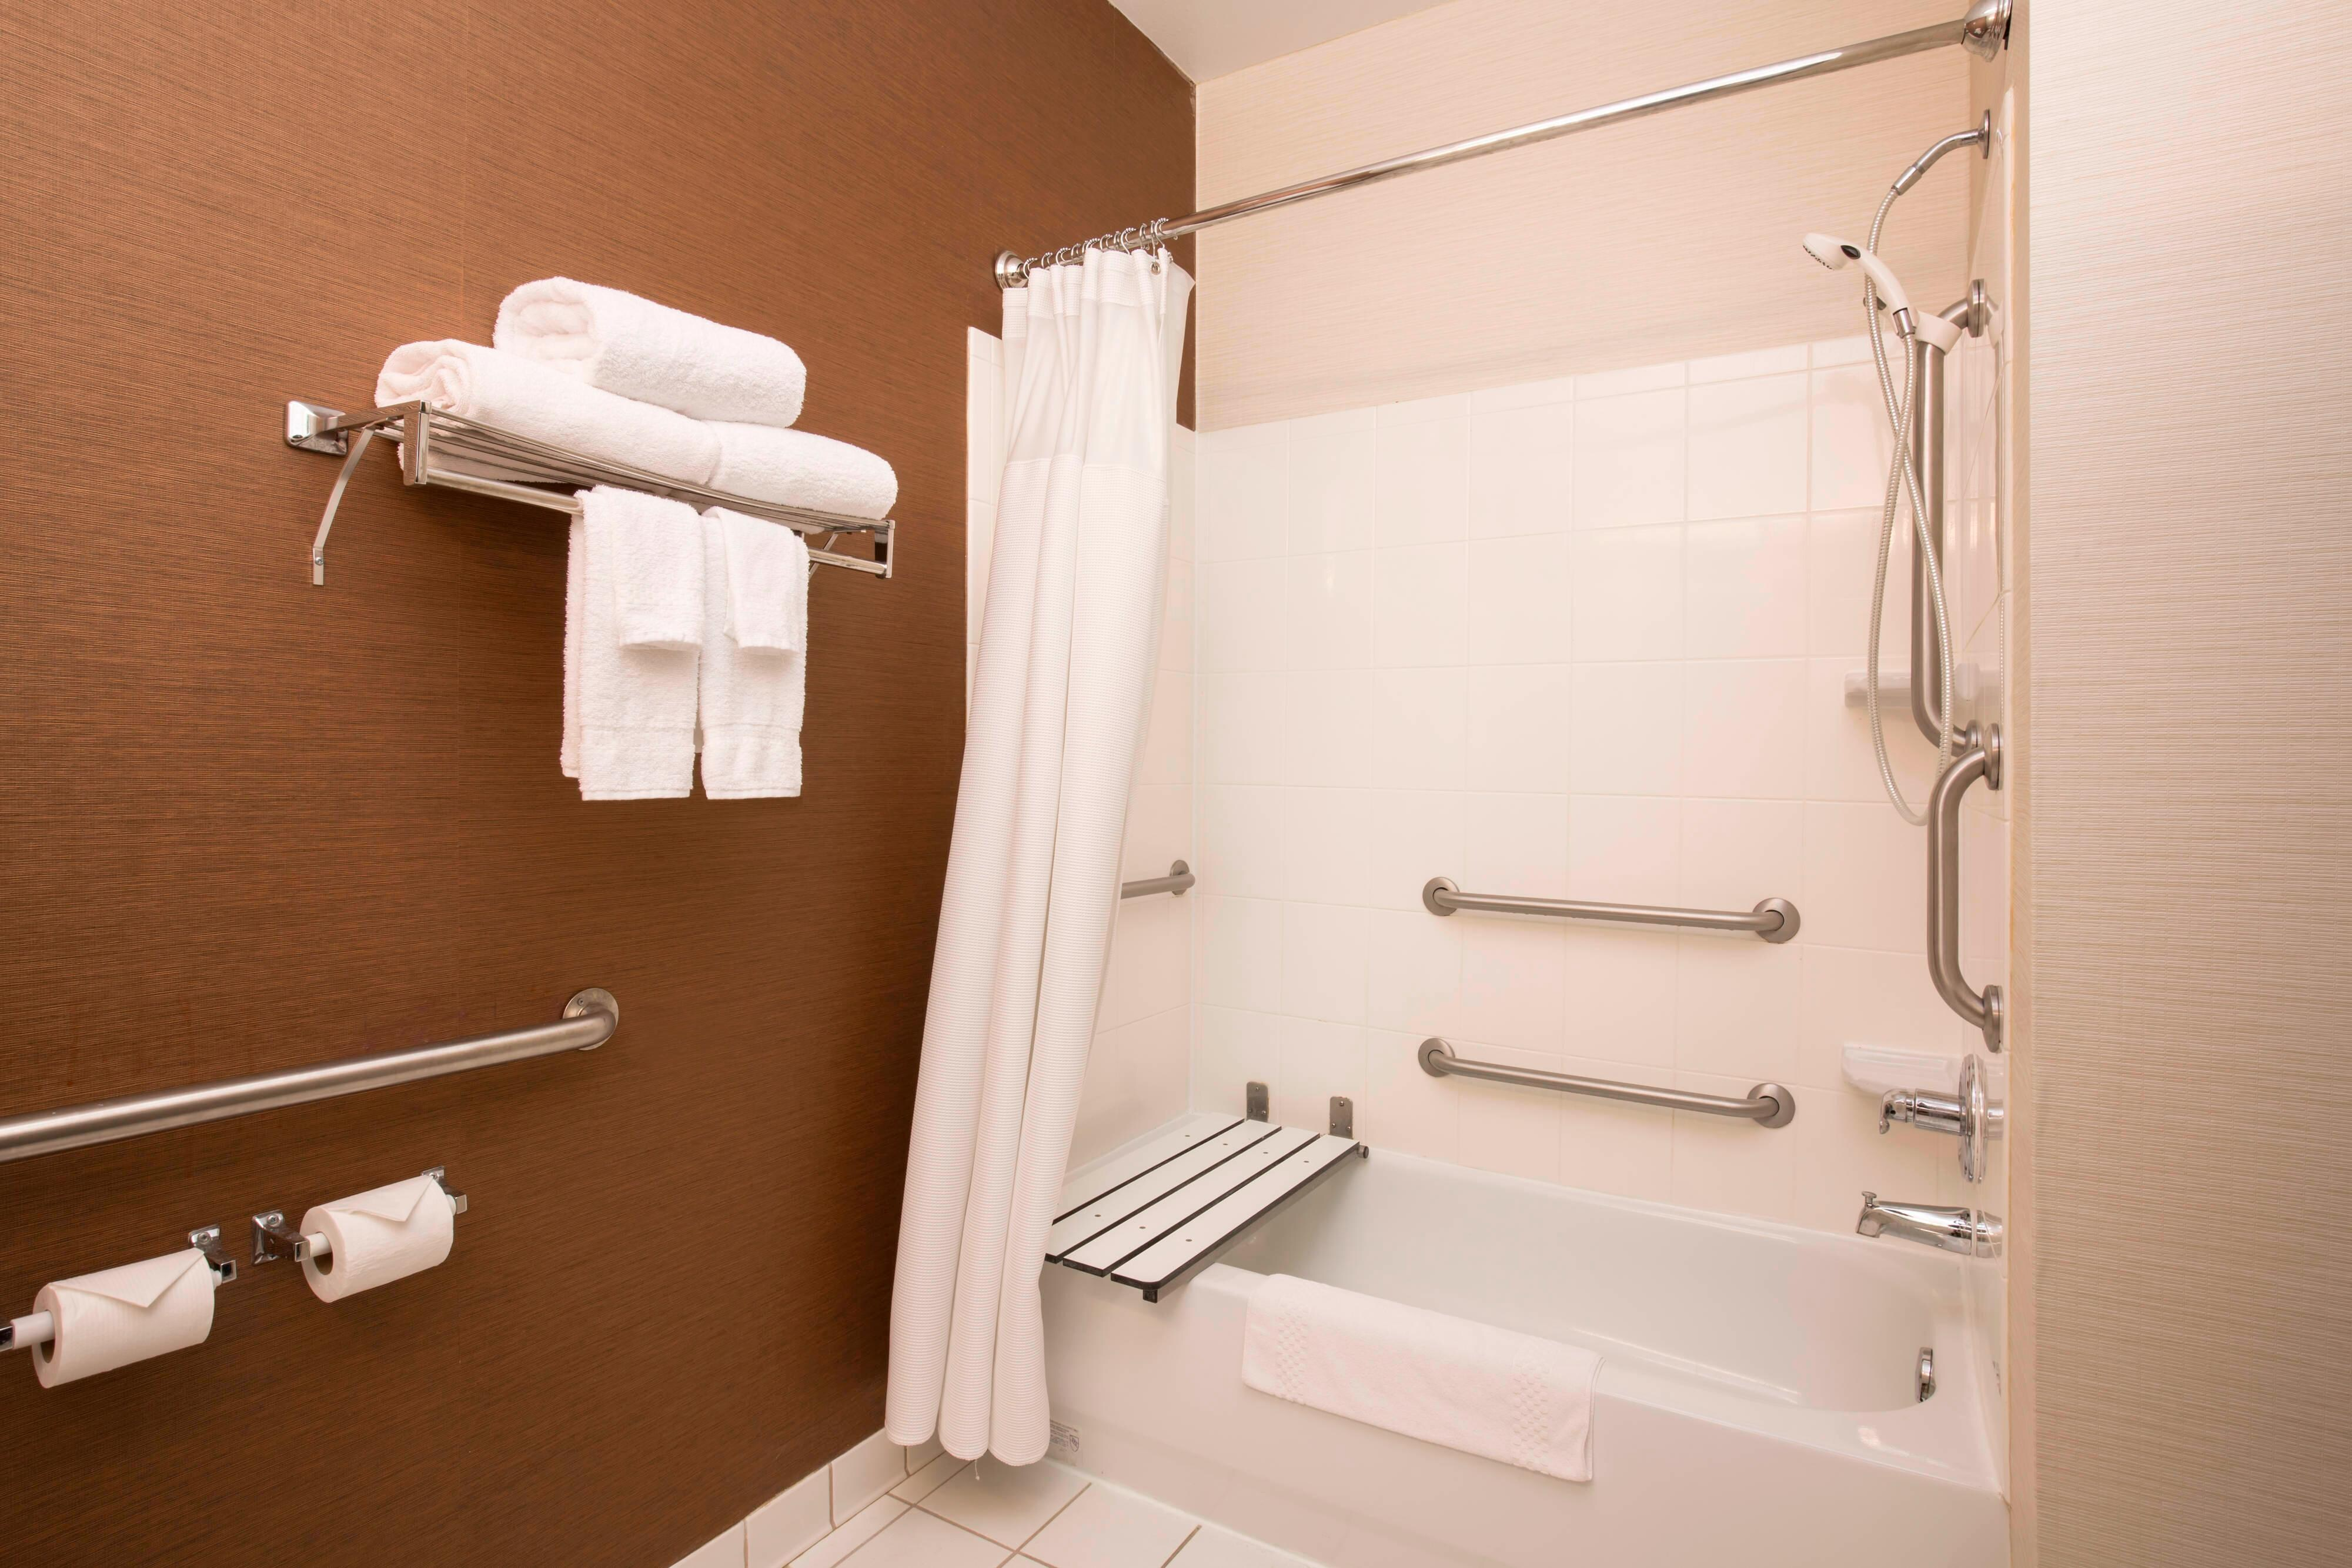 Houston Texas Hotel Accessible Bathroom